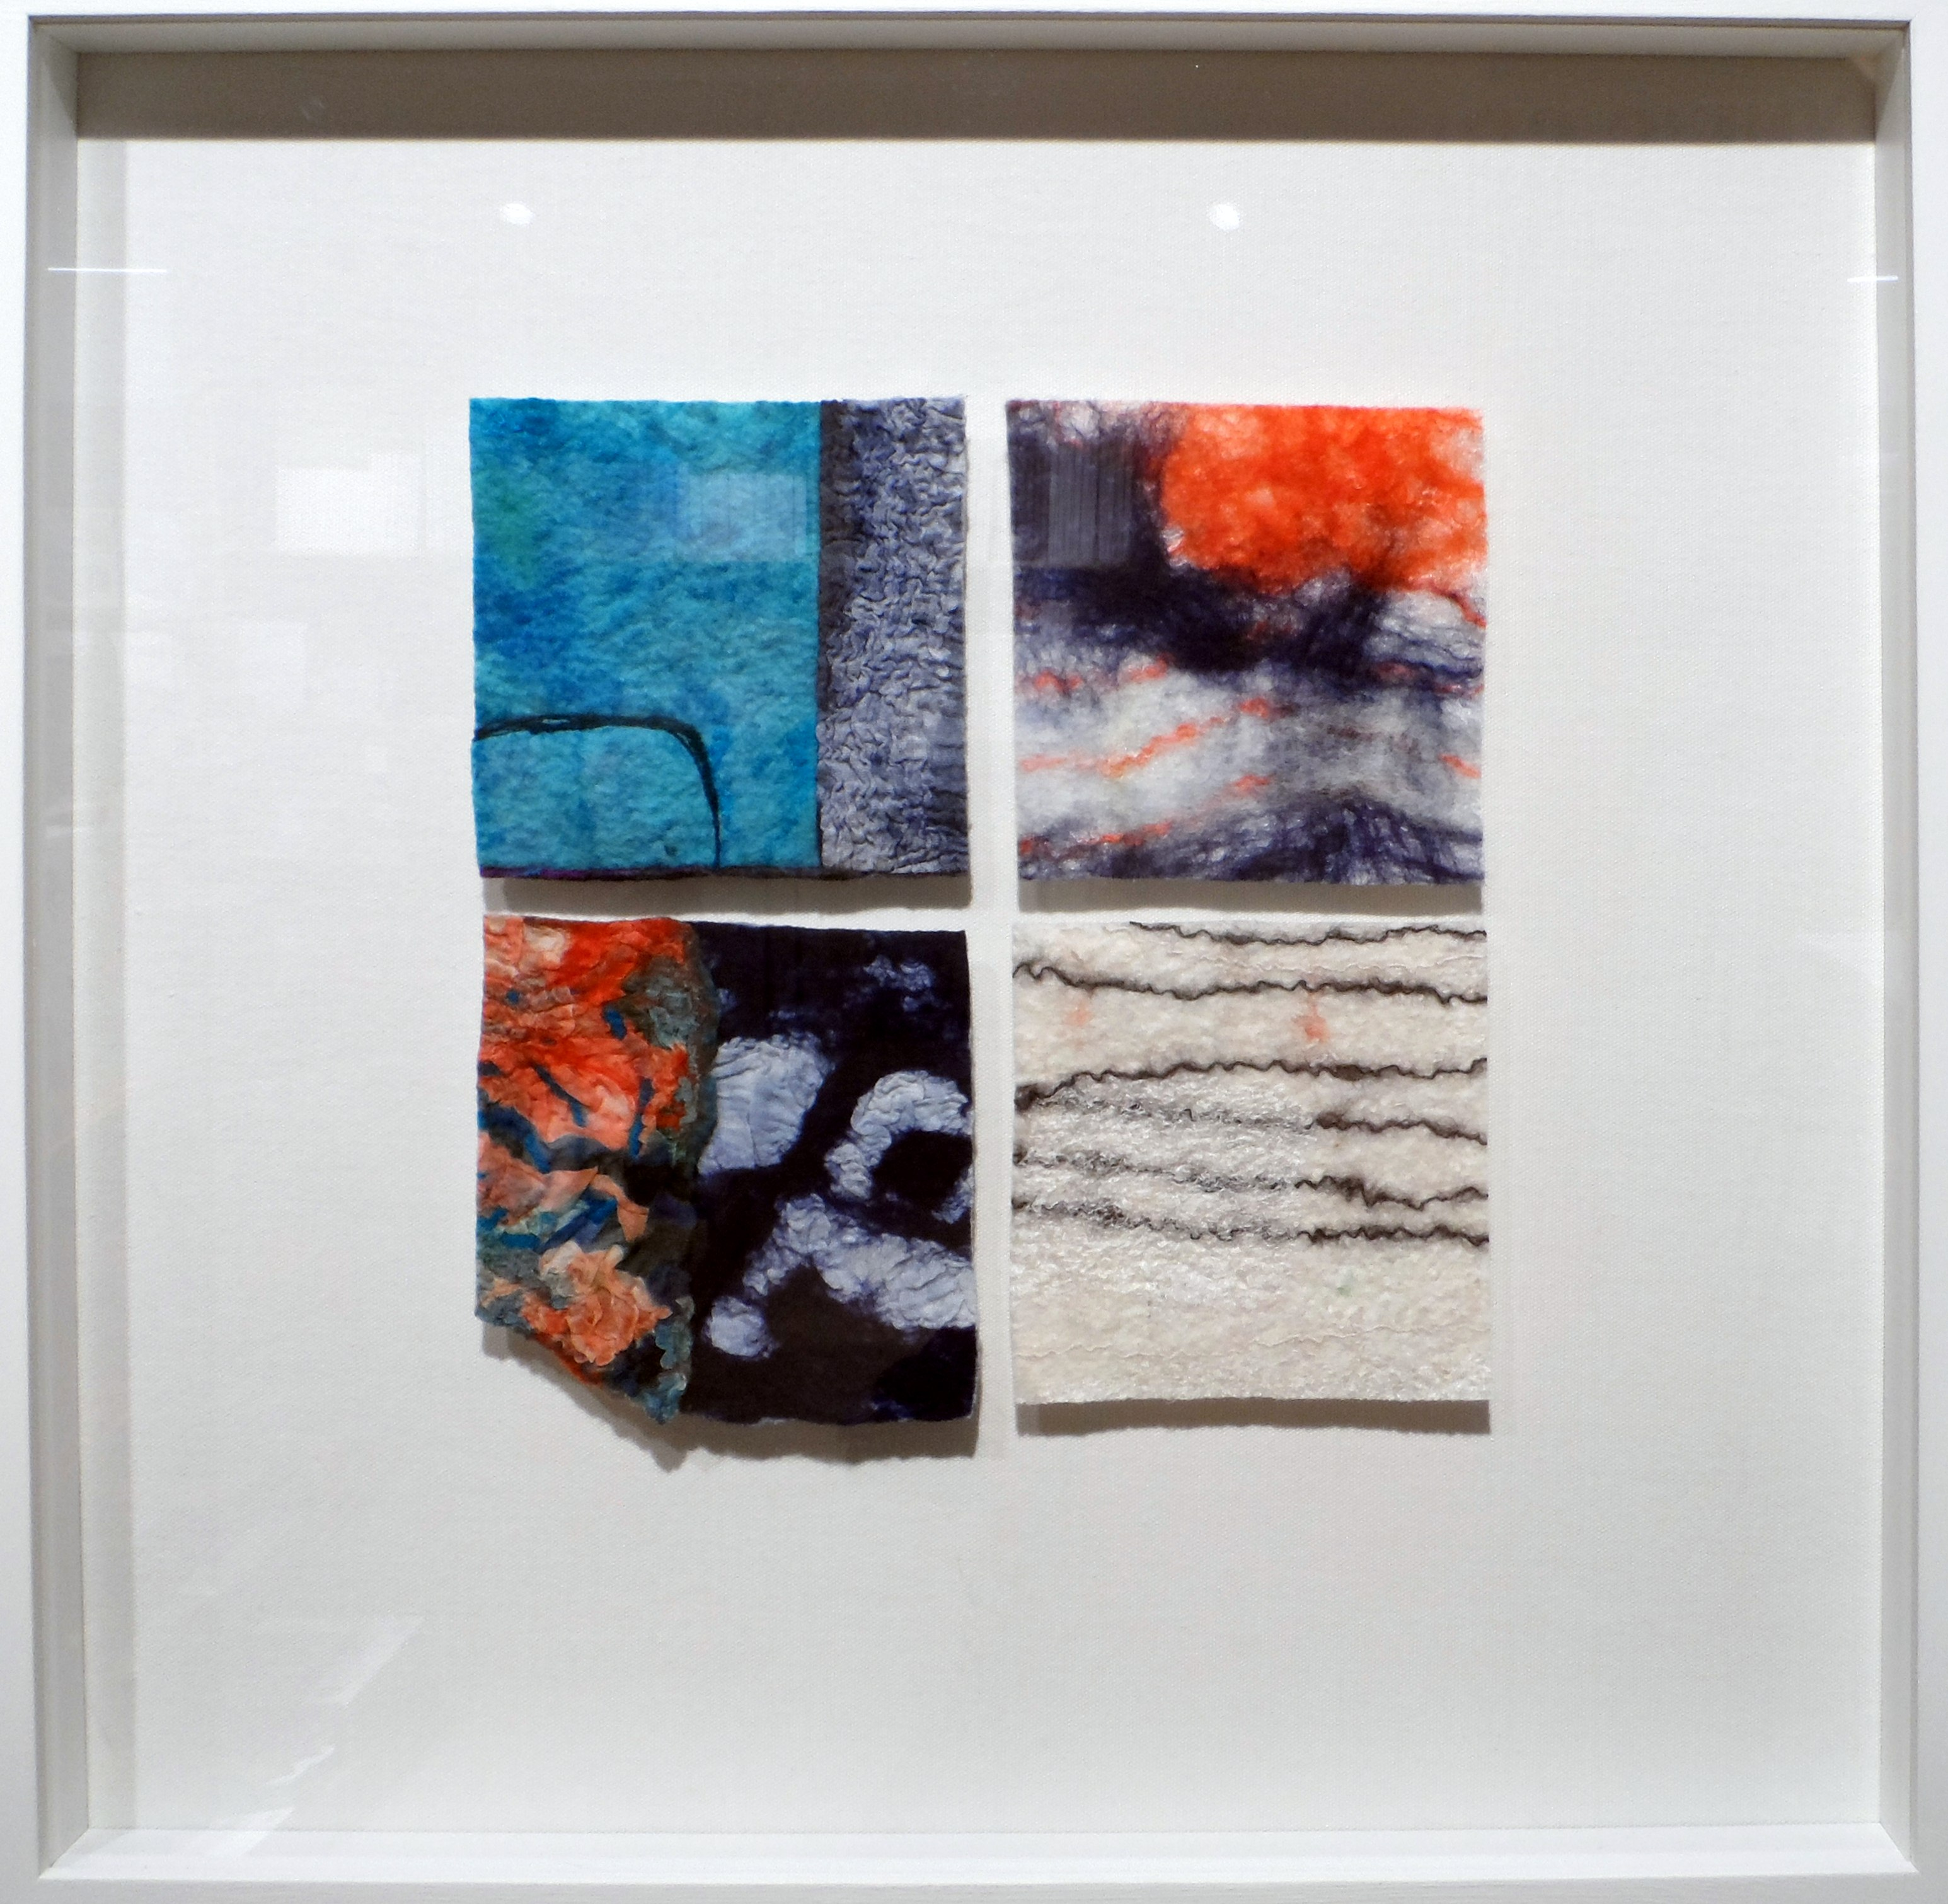 UNTITLED B by Cath Carmyllie, felted stitched, dyed, printed textiles, Re-View Textile exhibition, Nov 2019